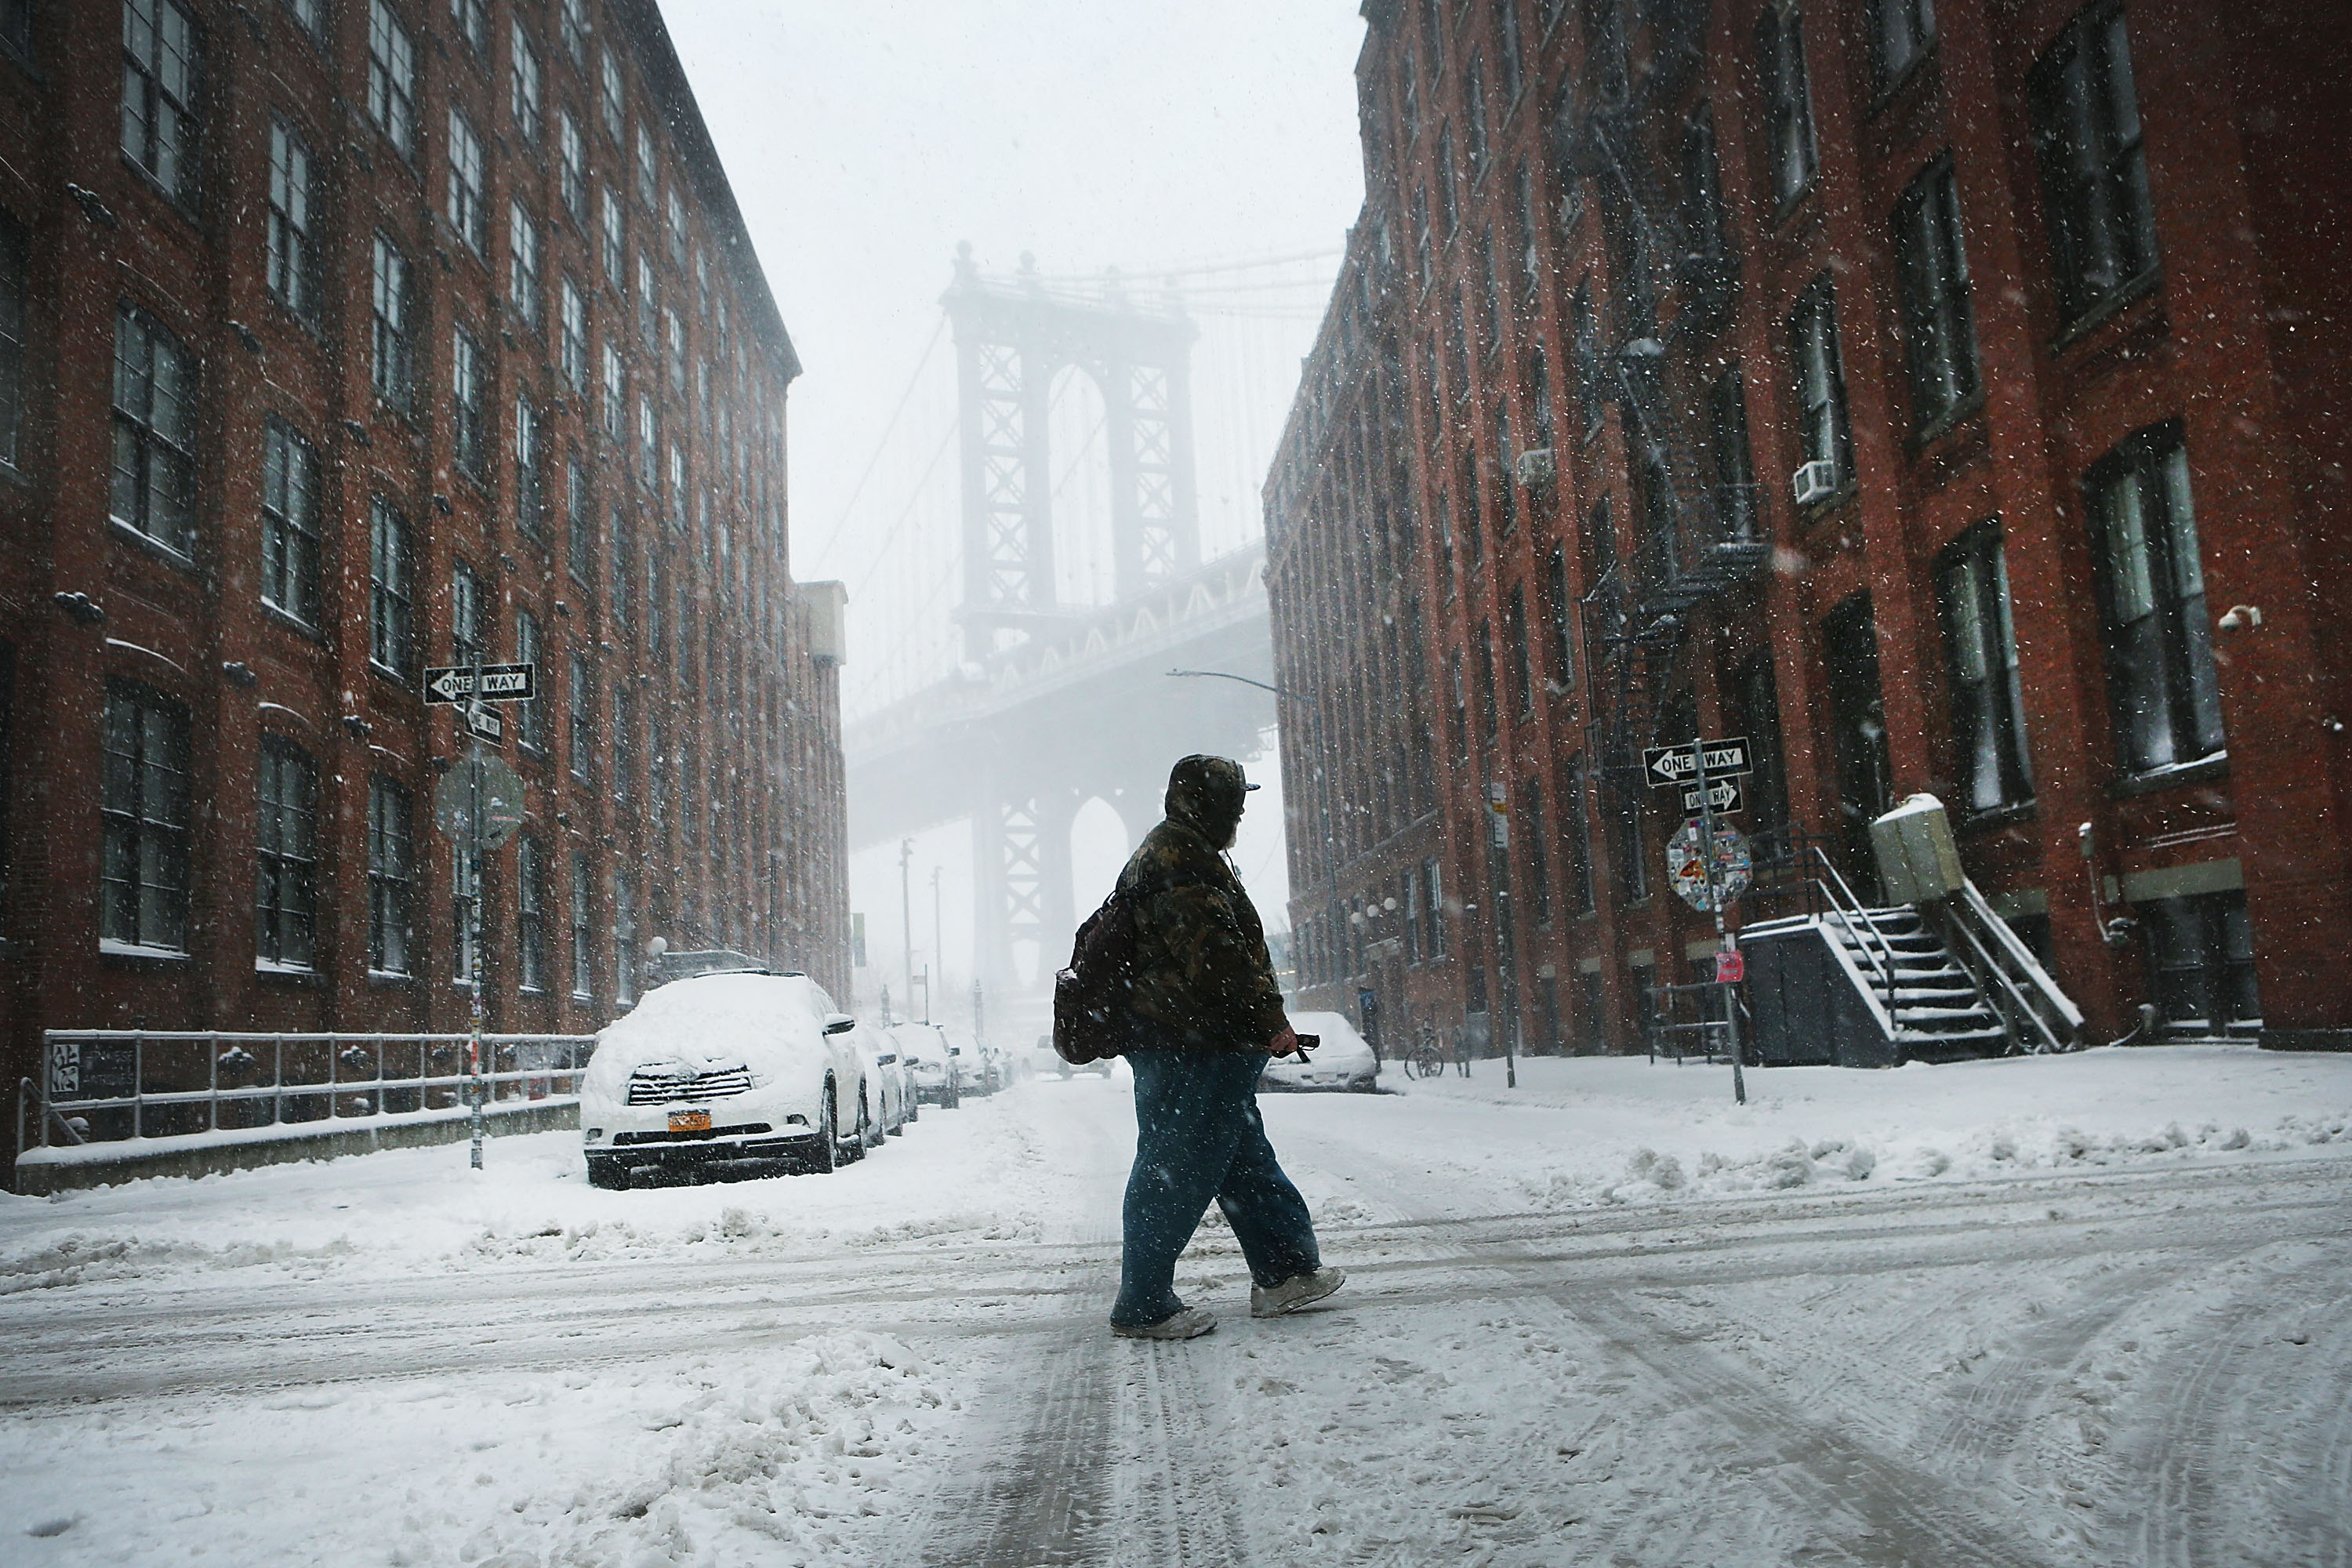 A pedestrian makes his way through the snow and wind  during a storm on Feb. 9, 2017 in the Brooklyn borough of New York City. (Getty Images)